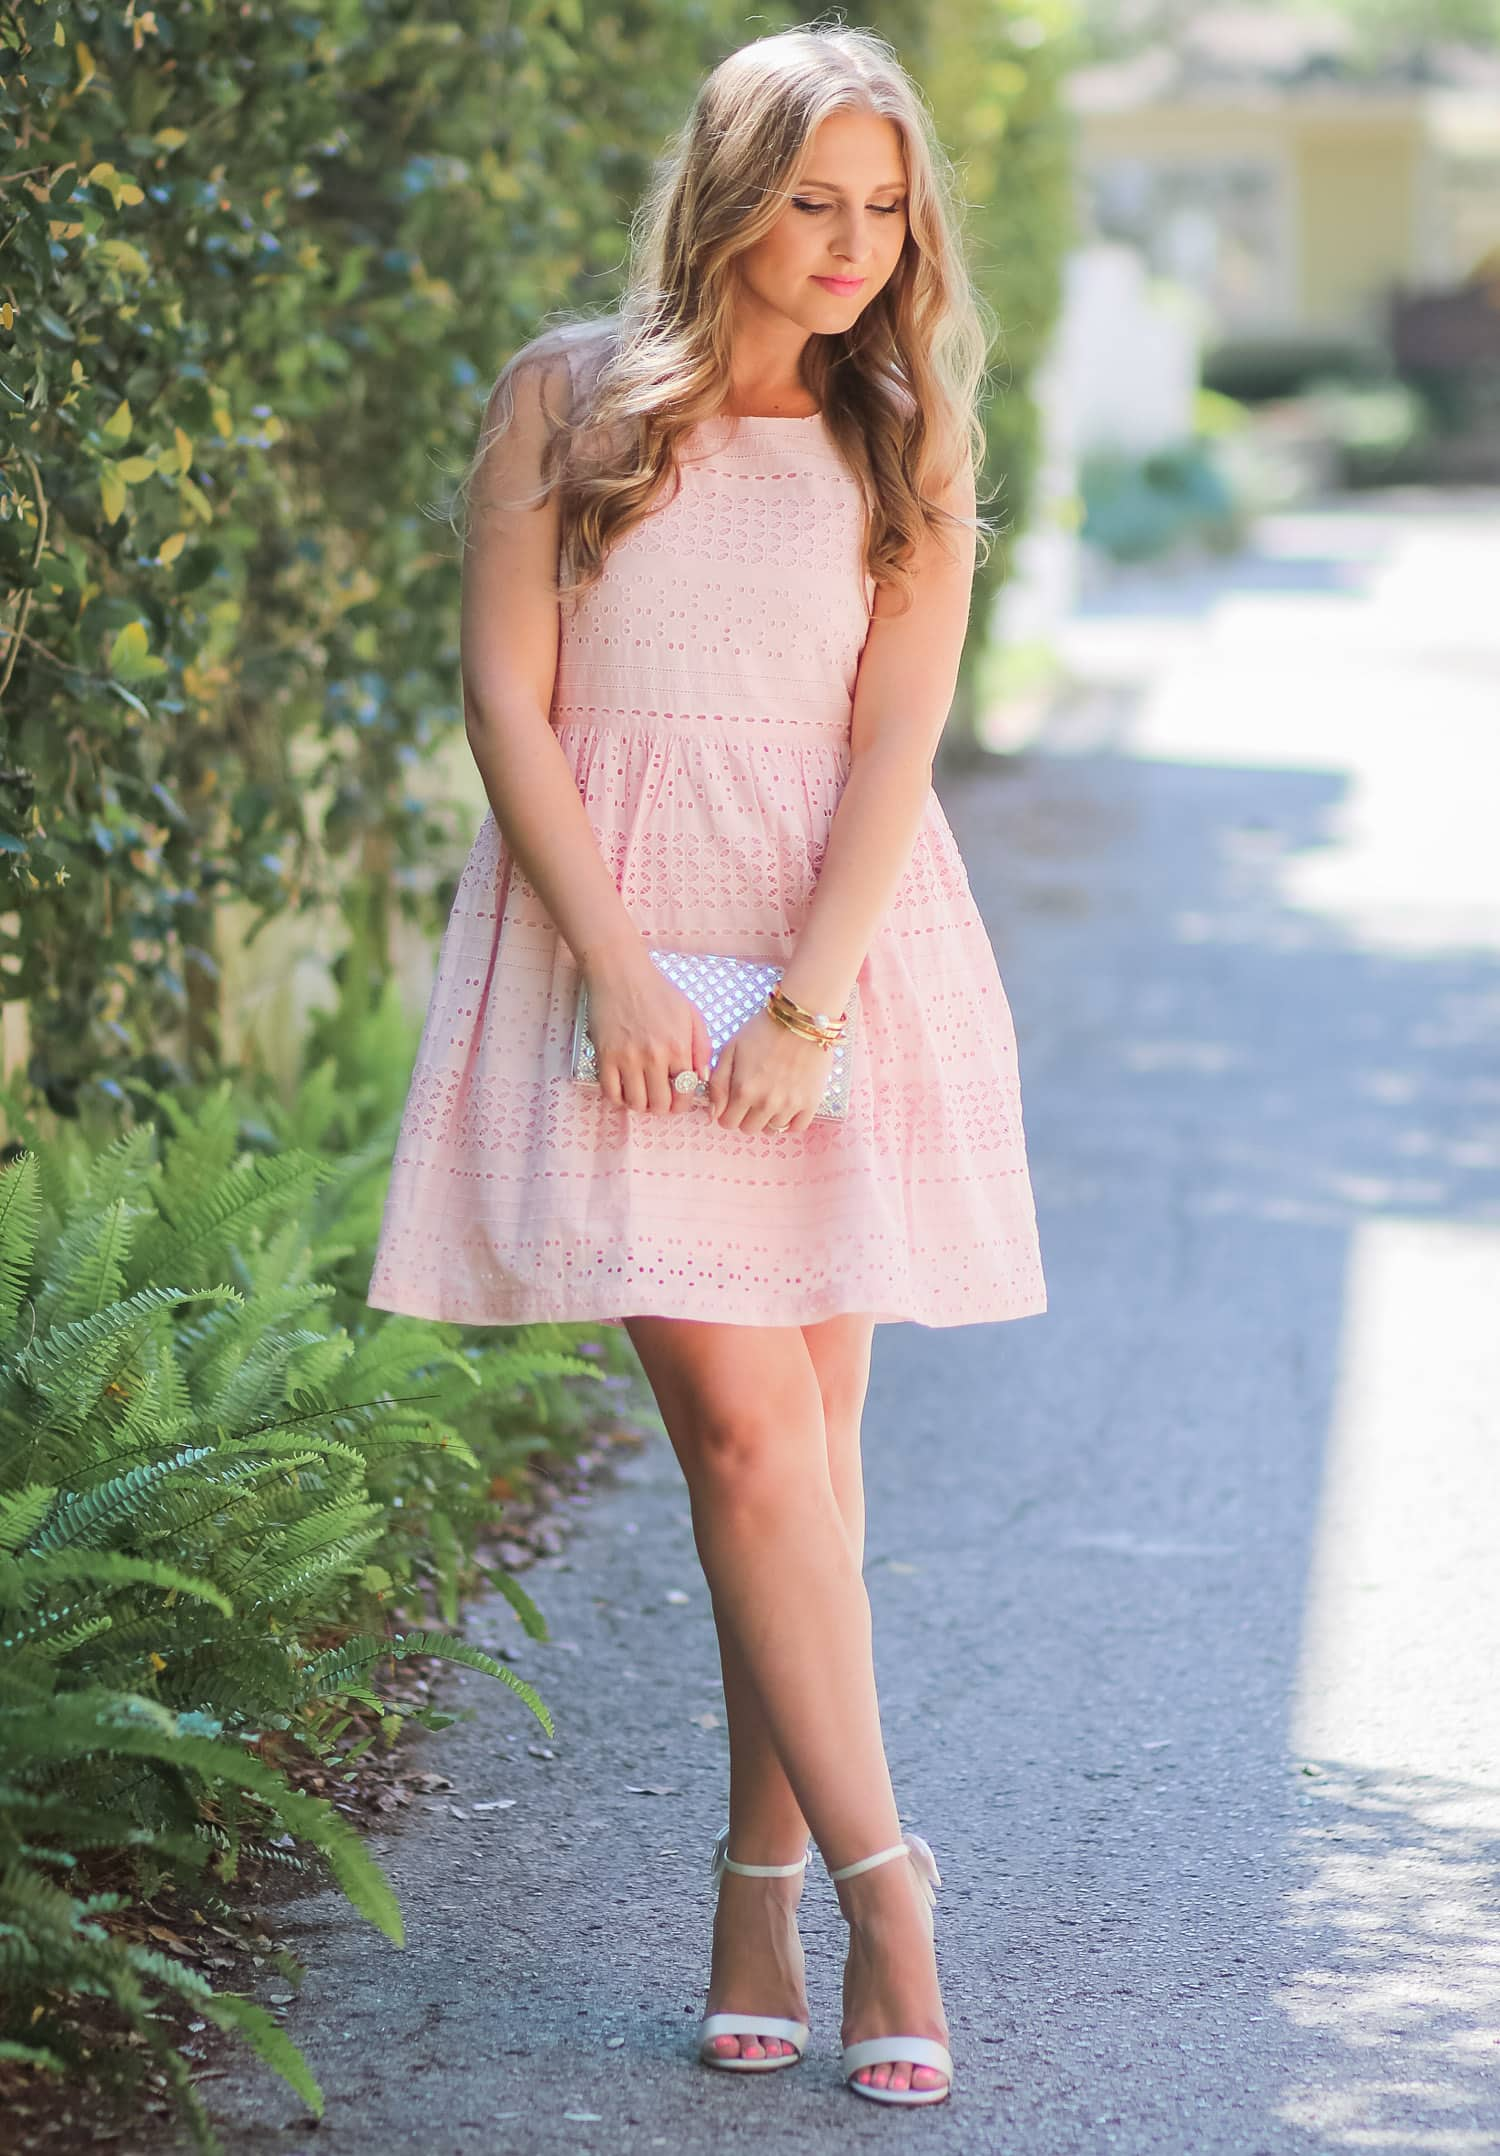 29f3e512cc1 The most darling spring or summer wedding outfit idea from style blogger  Ashley Brooke! I